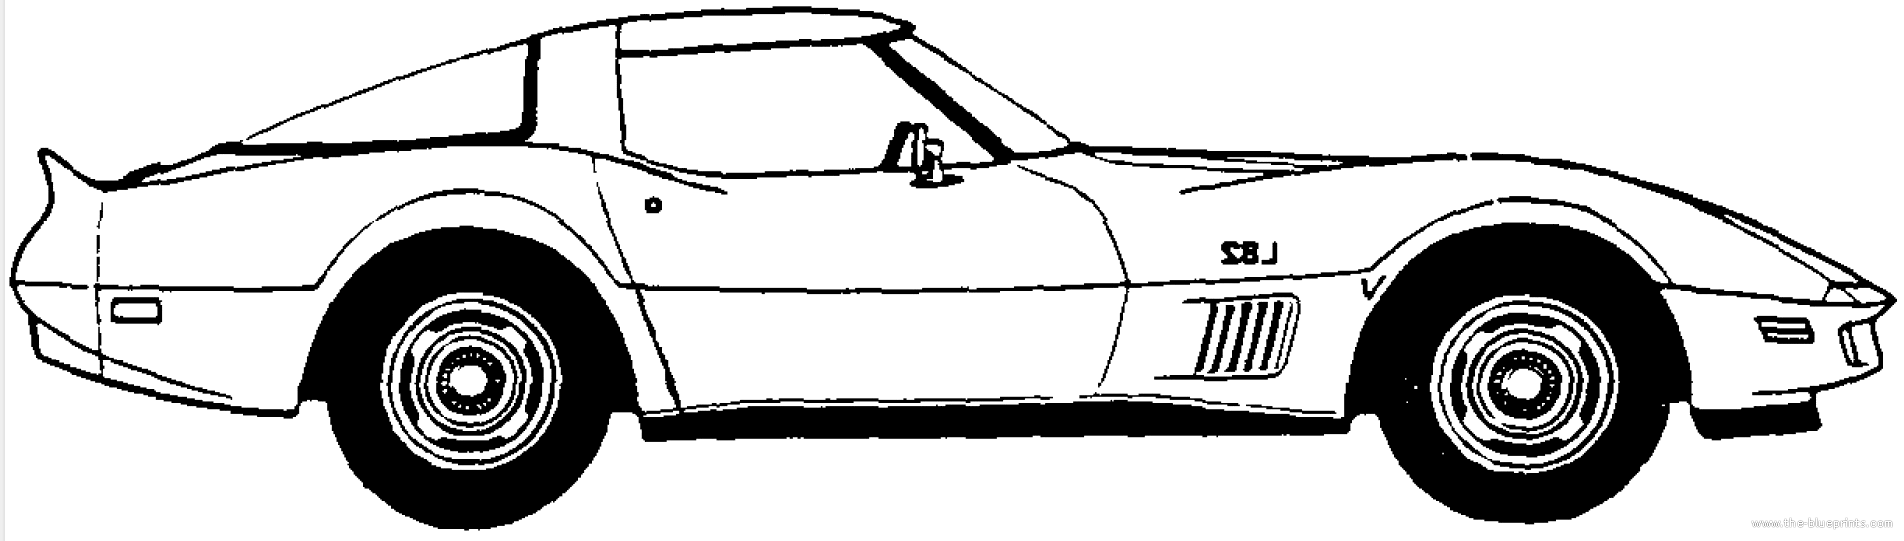 banner black and white stock Free cliparts download clip. Corvette stingray clipart.